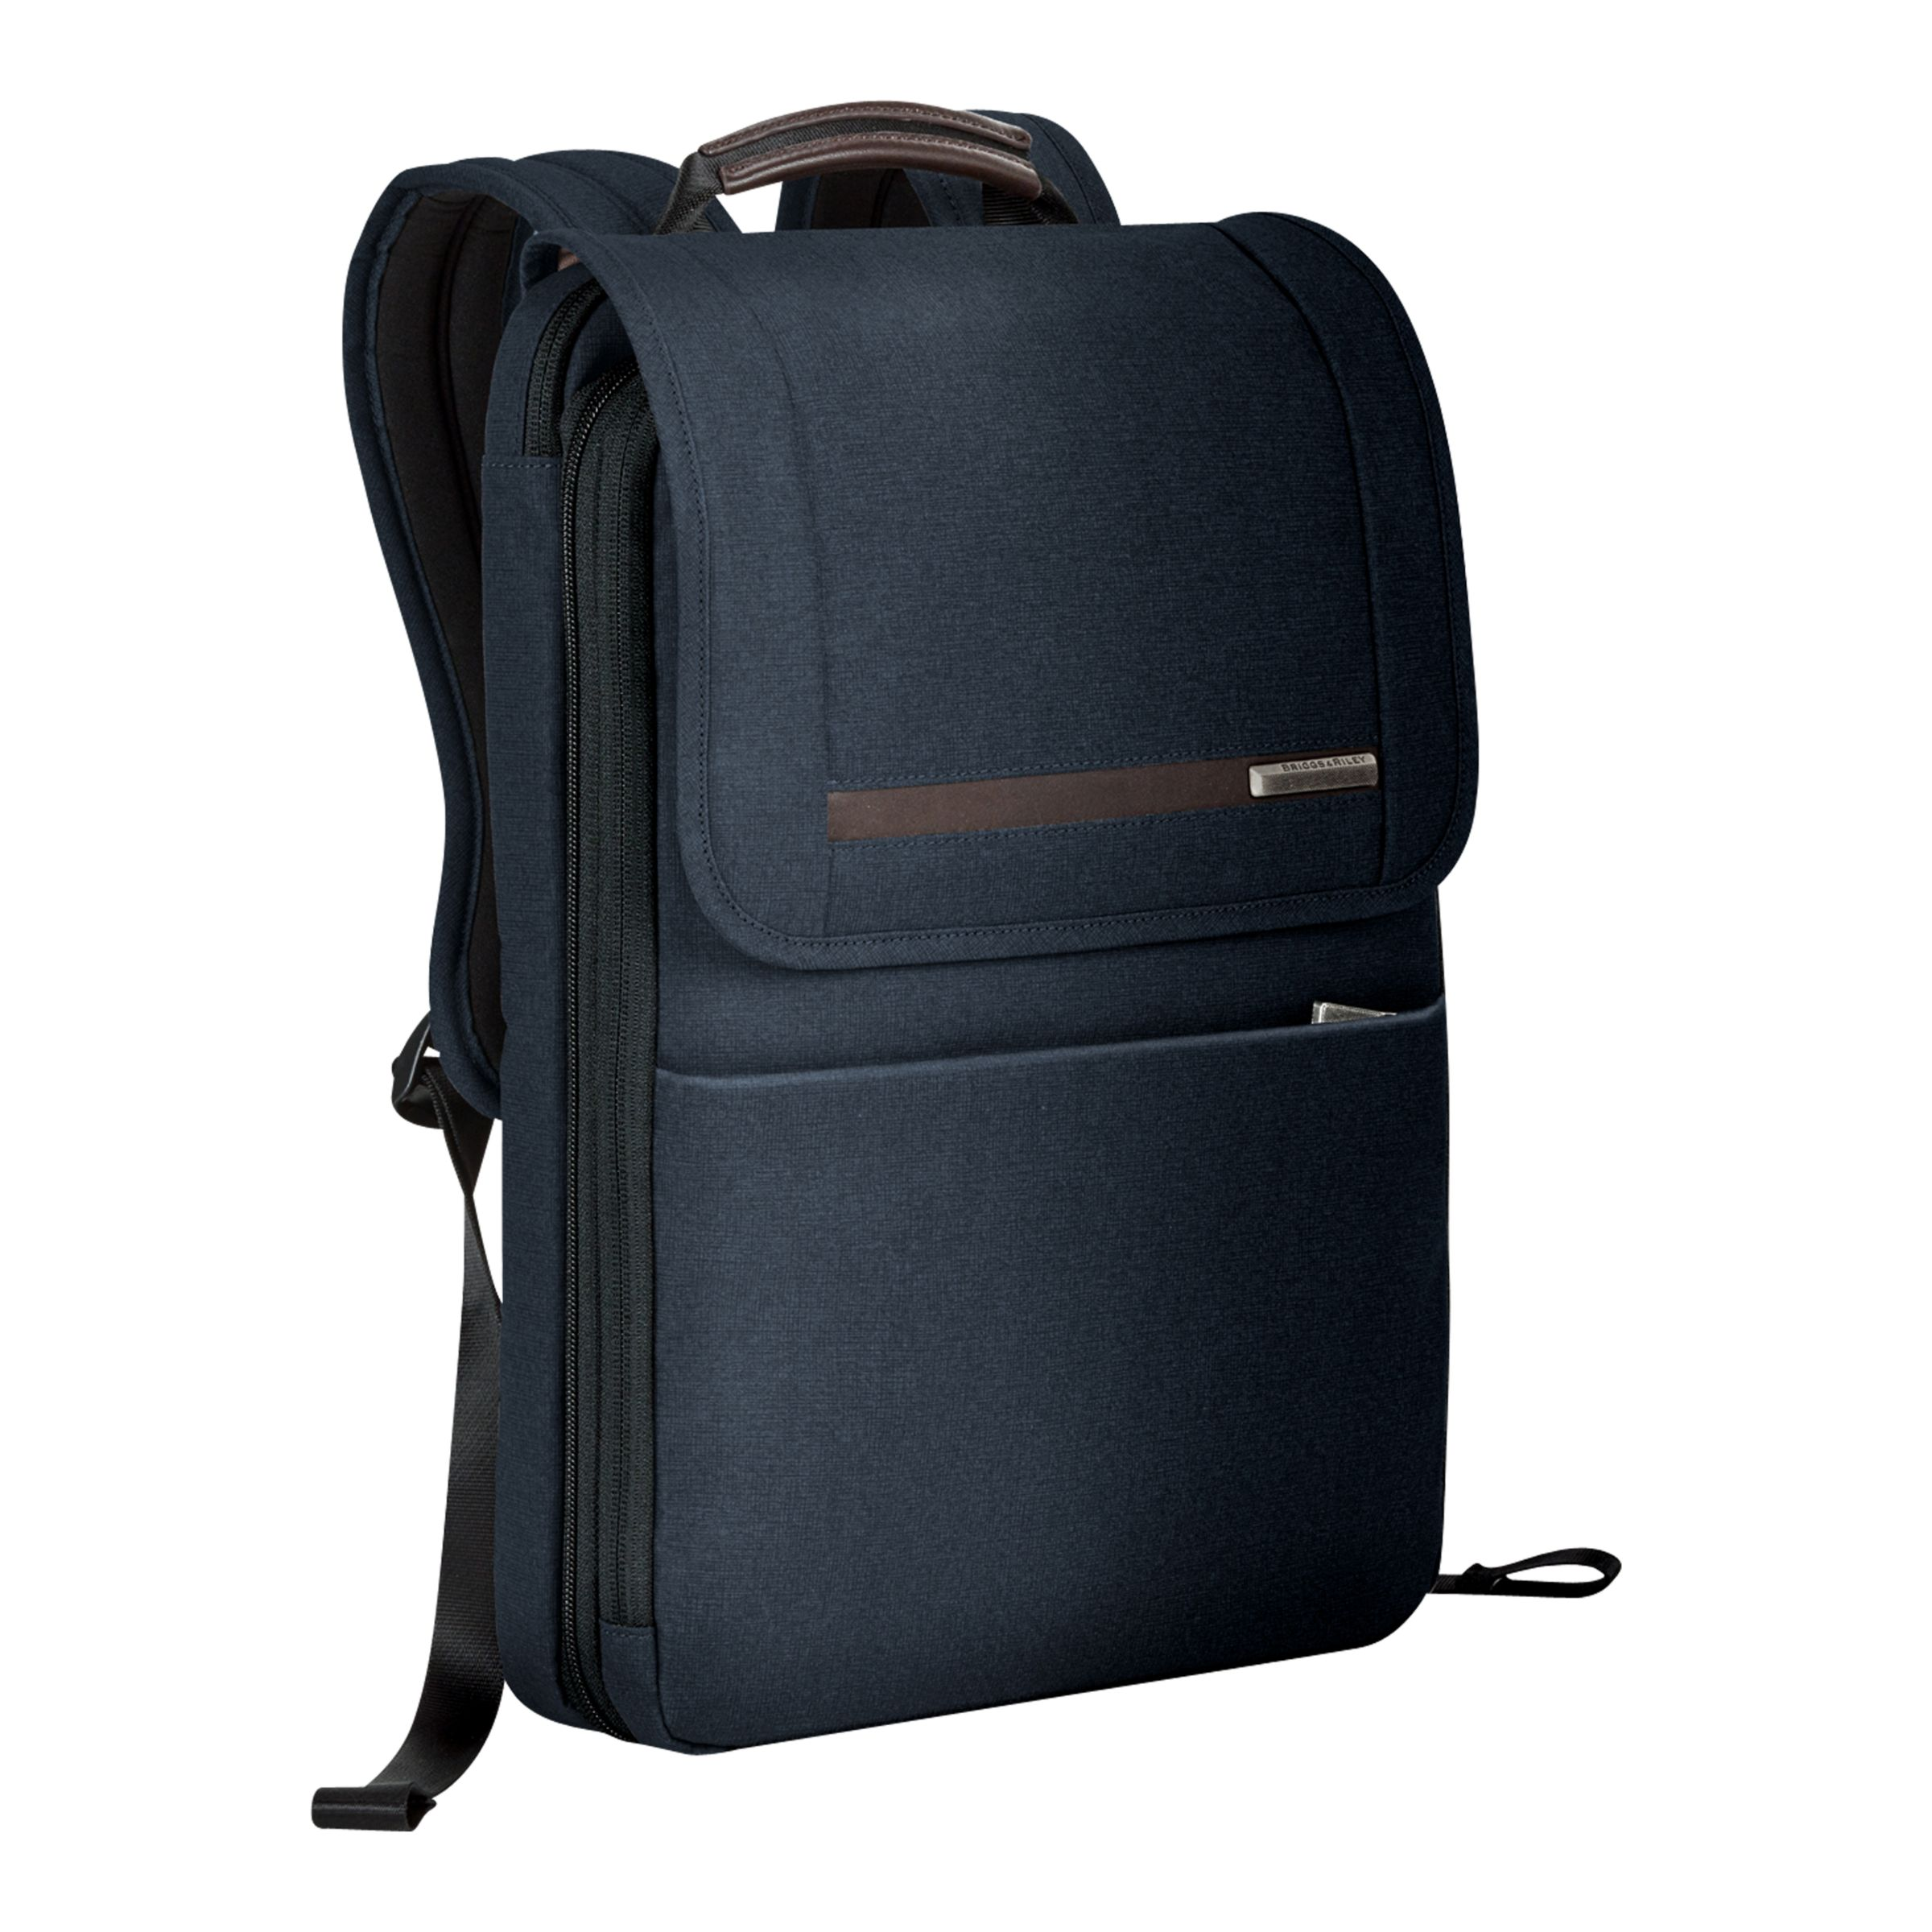 Briggs & Riley Briggs & Riley Kinzie Flapover Expandable Backpack